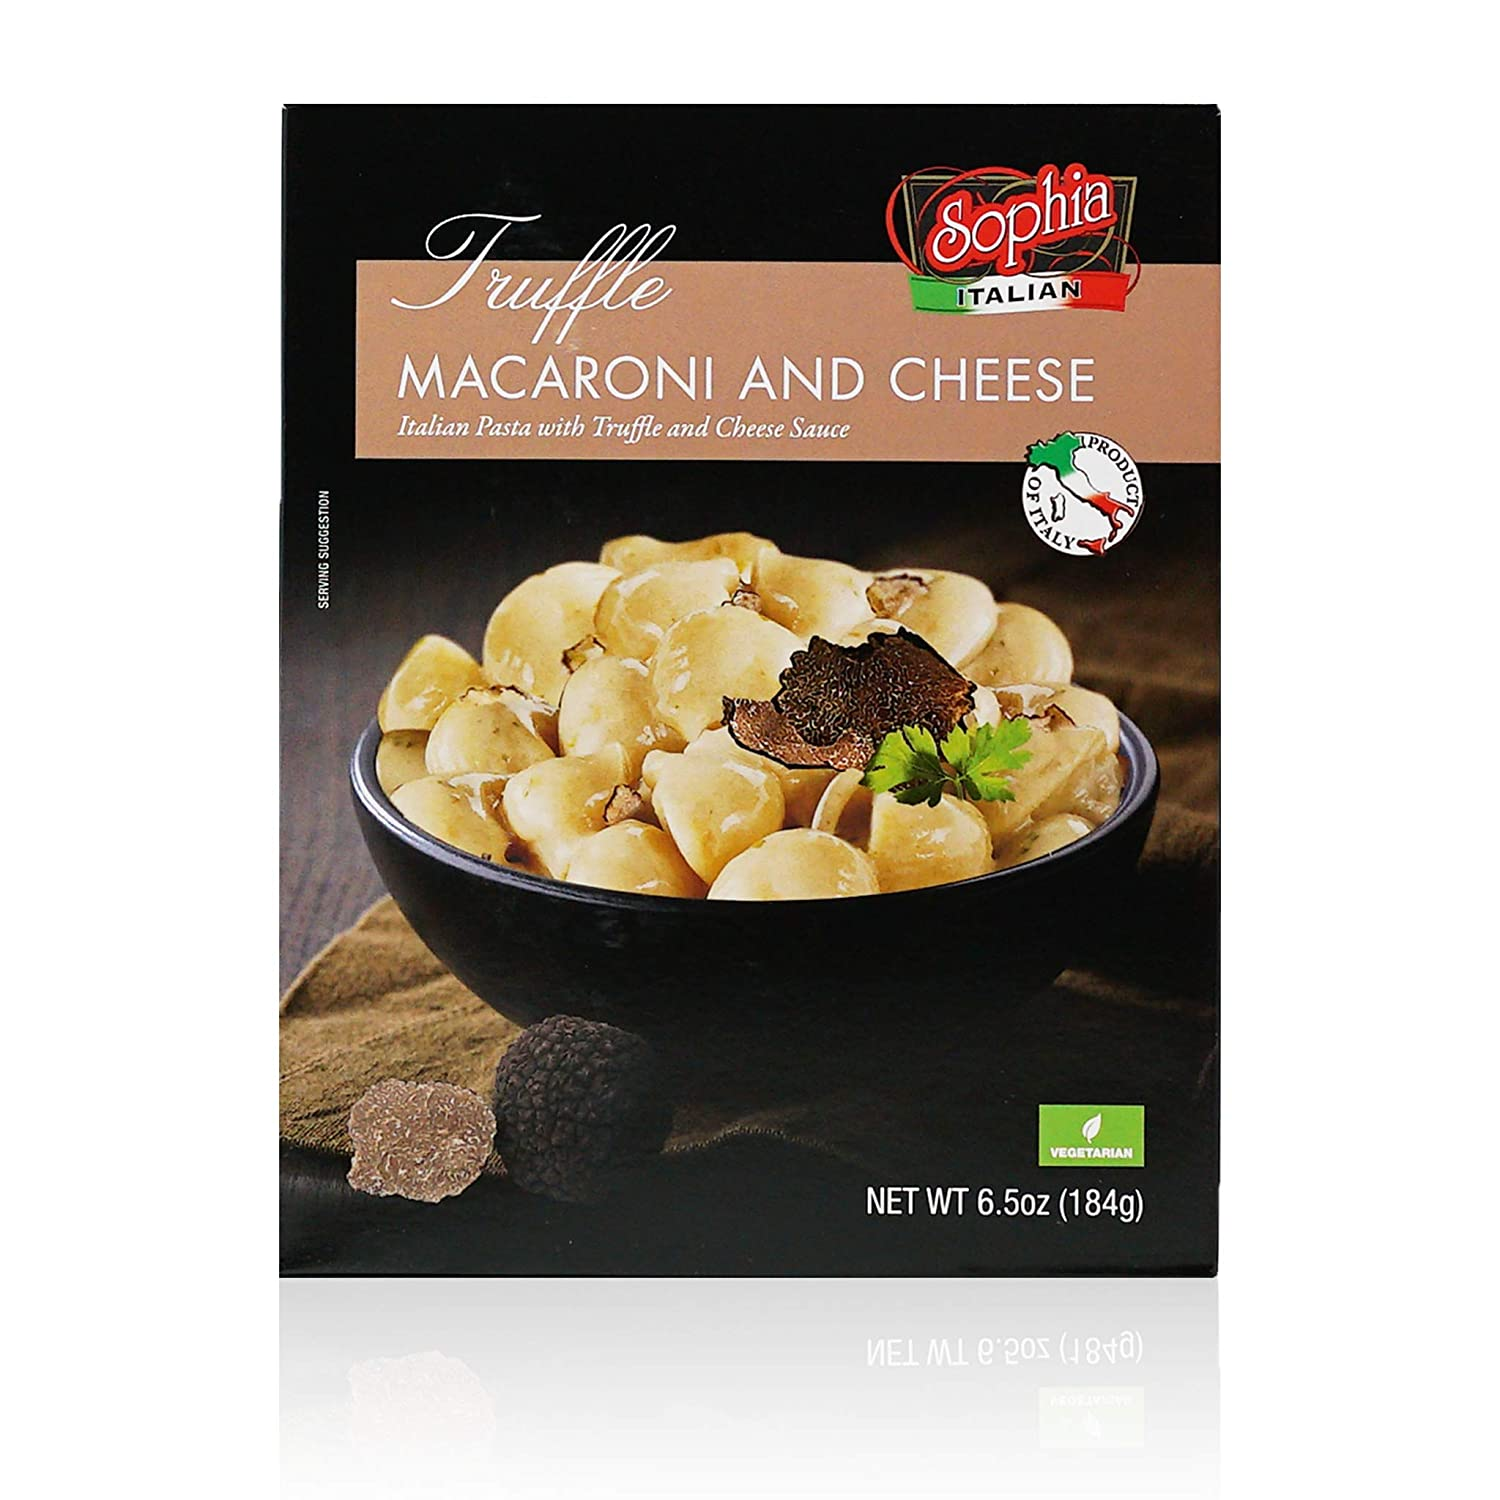 Sophia Macaroni and shop Cheese Super special price Truffle 6.5oz 6-pack -